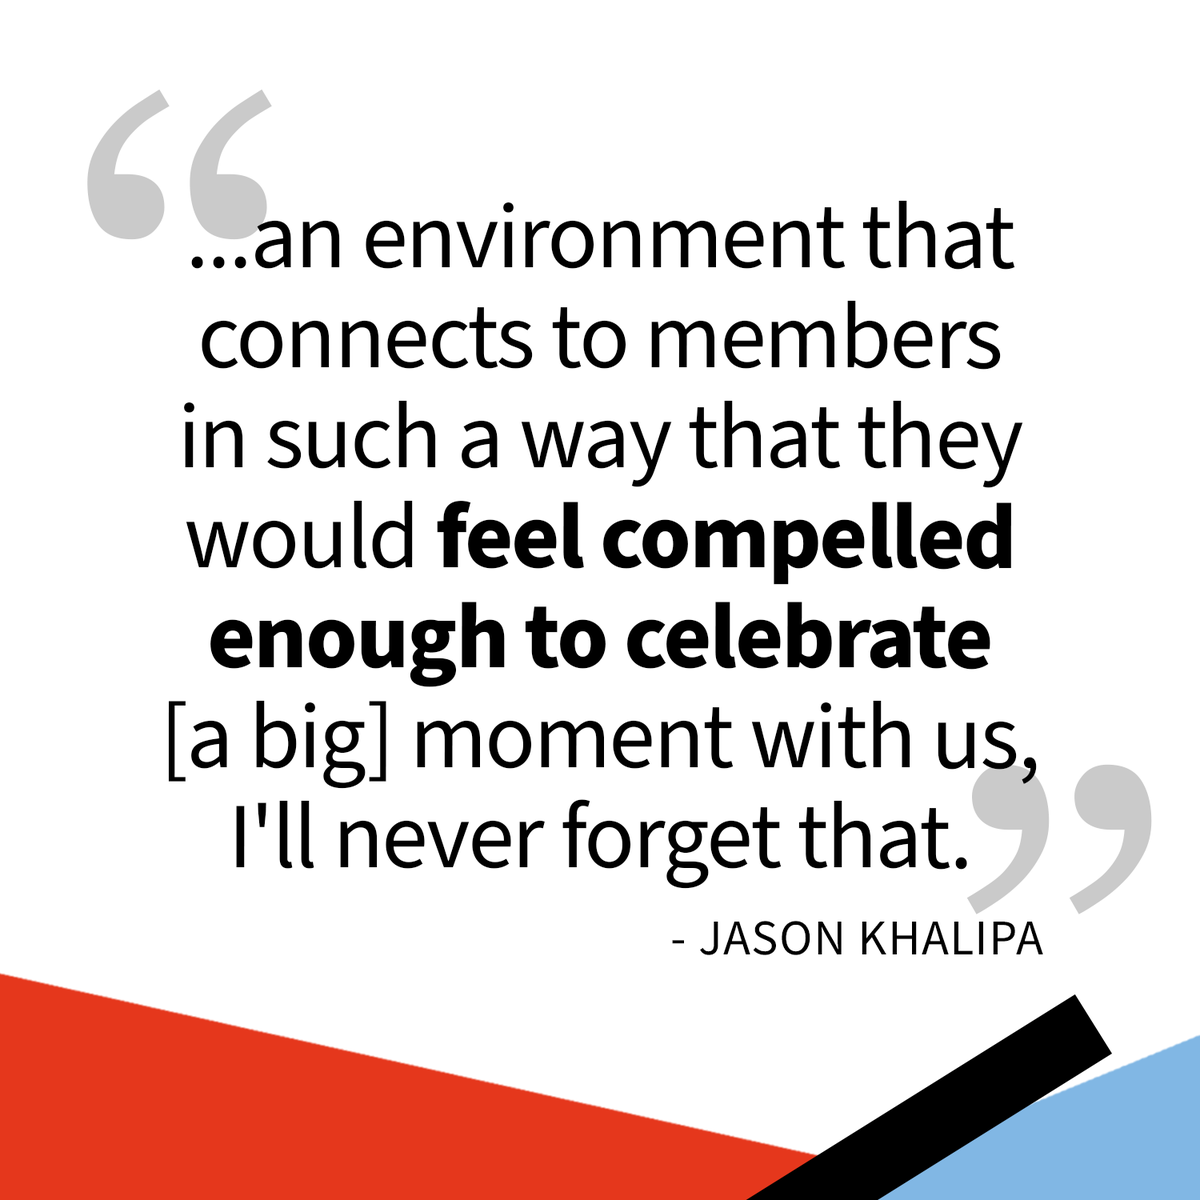 Our #MondayMotivation is brought to you from the biz side of @JasonKhalipa. Here he is talking about 2 members of his gym who shared their proposal with other members. We should all strive to create a community where the members become family! #WodifyCommunity #FitnessCommunity